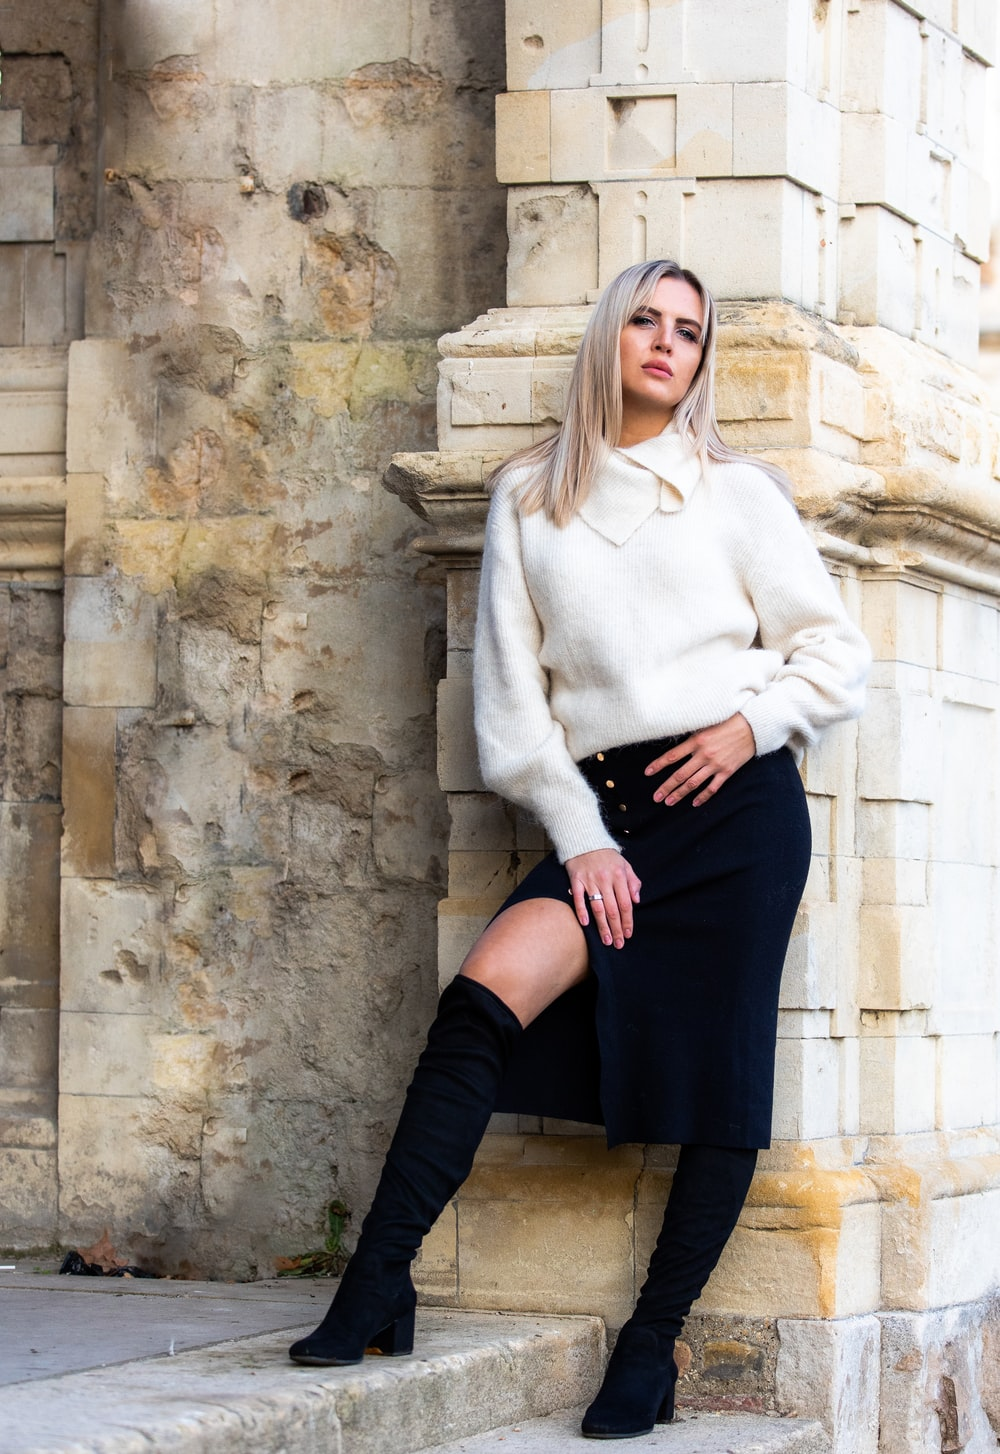 woman in white sweater and black skirt sitting on concrete wall during daytime